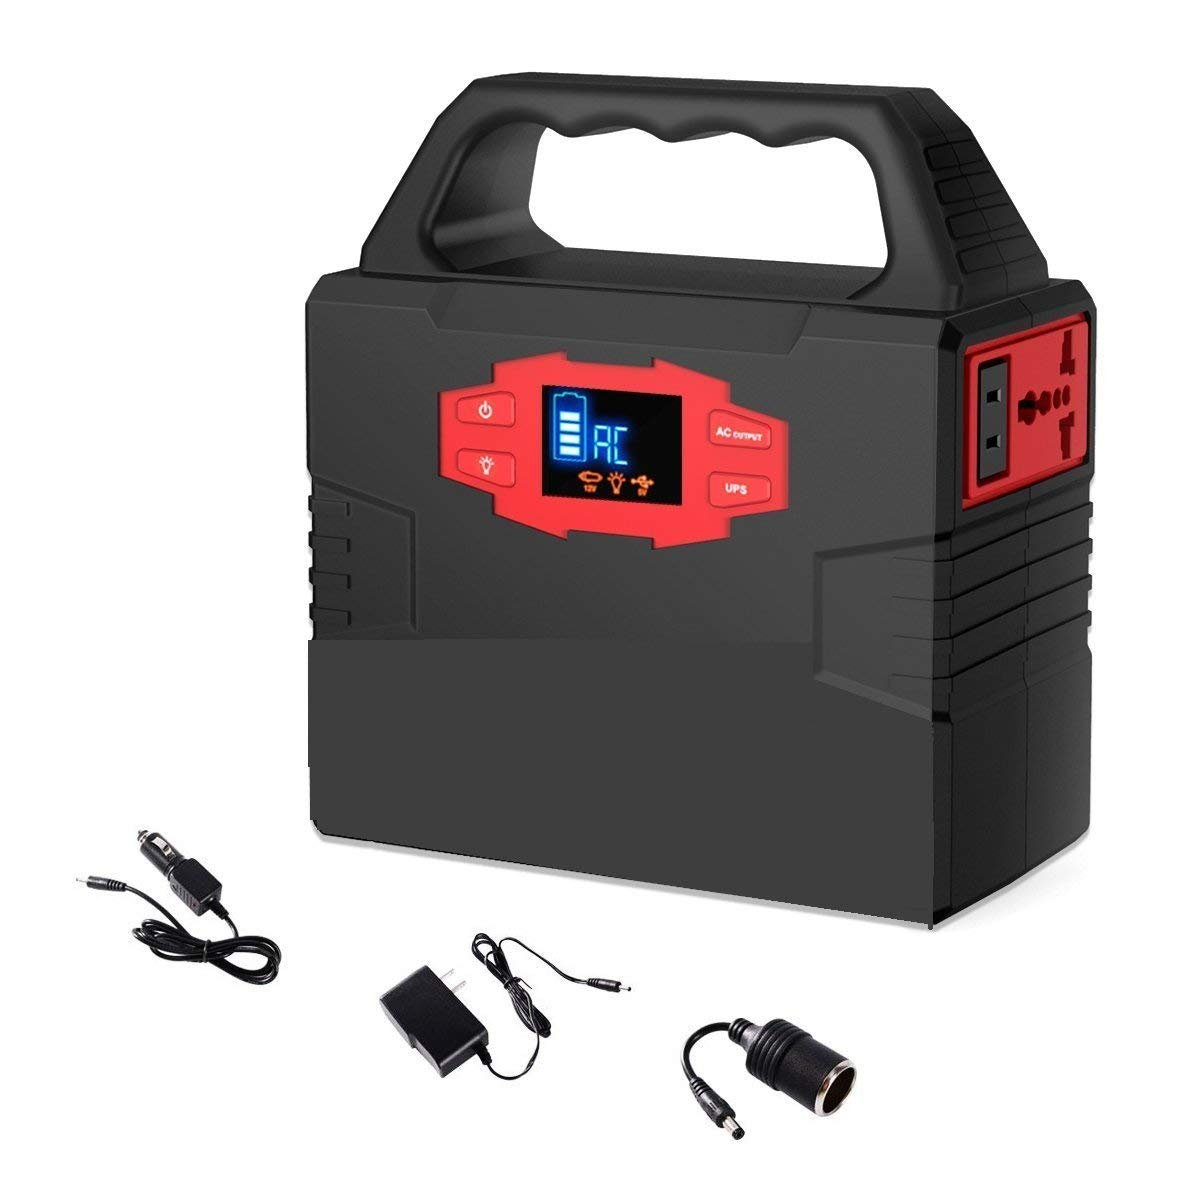 100-Watt Portable Generator Power Station, CPAP Battery Pack, Home Camping Emergency Power Supply Charged by Solar Panel/Wall Outlet/Car with Dual 110V AC Power Inverter, USB Ports, 3 DC 12V Ports